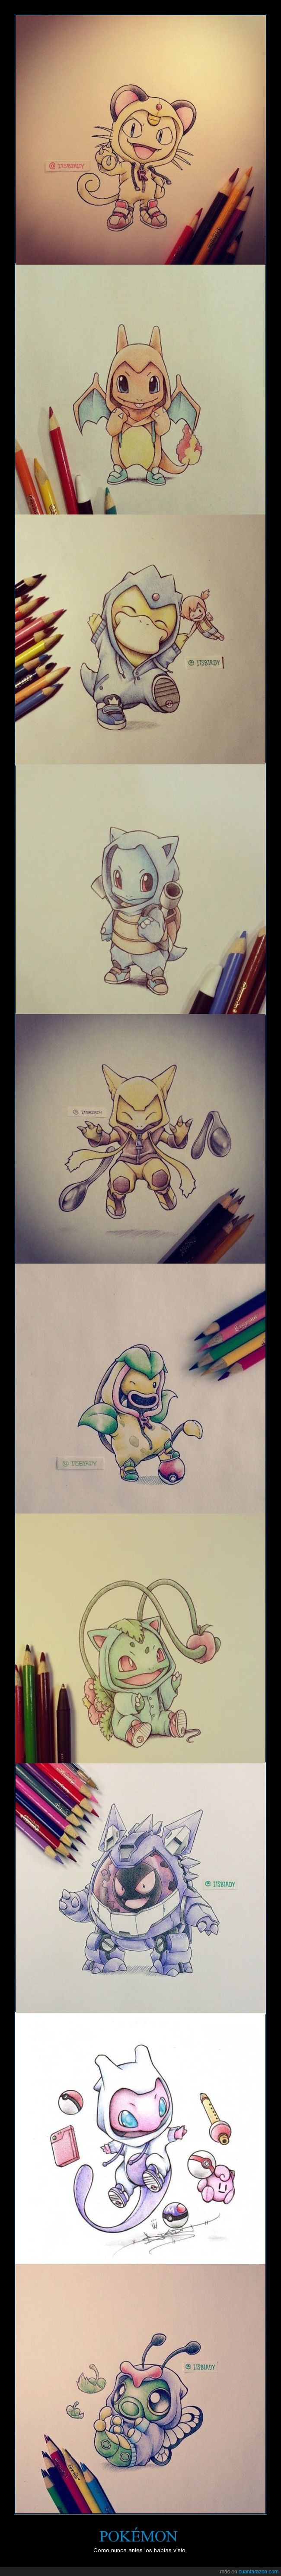 abra,blastoise,bulbasaur,caterpie,charmander,dibujos,gastly,itsbirdy,Meowth,mew,pokemon,psyduck,victreebel